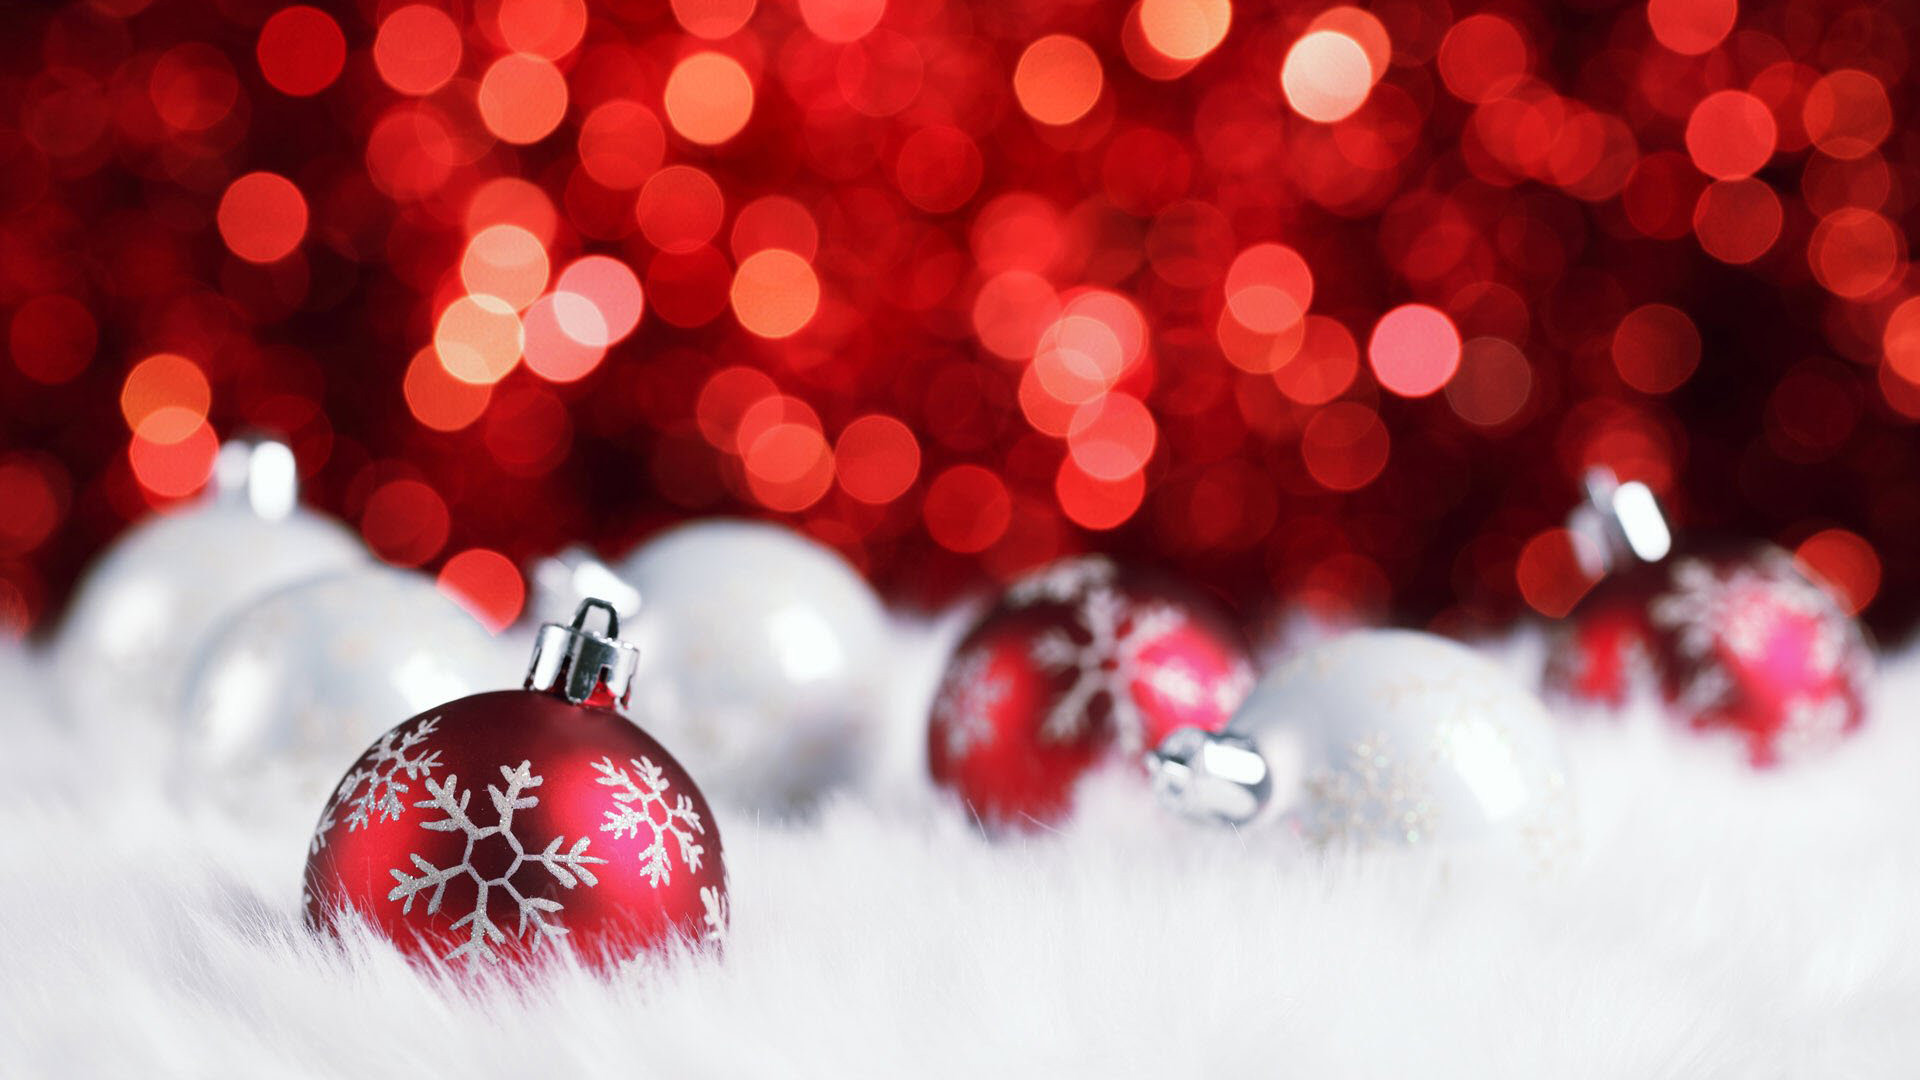 Christmas Wallpaper Backgrounds for